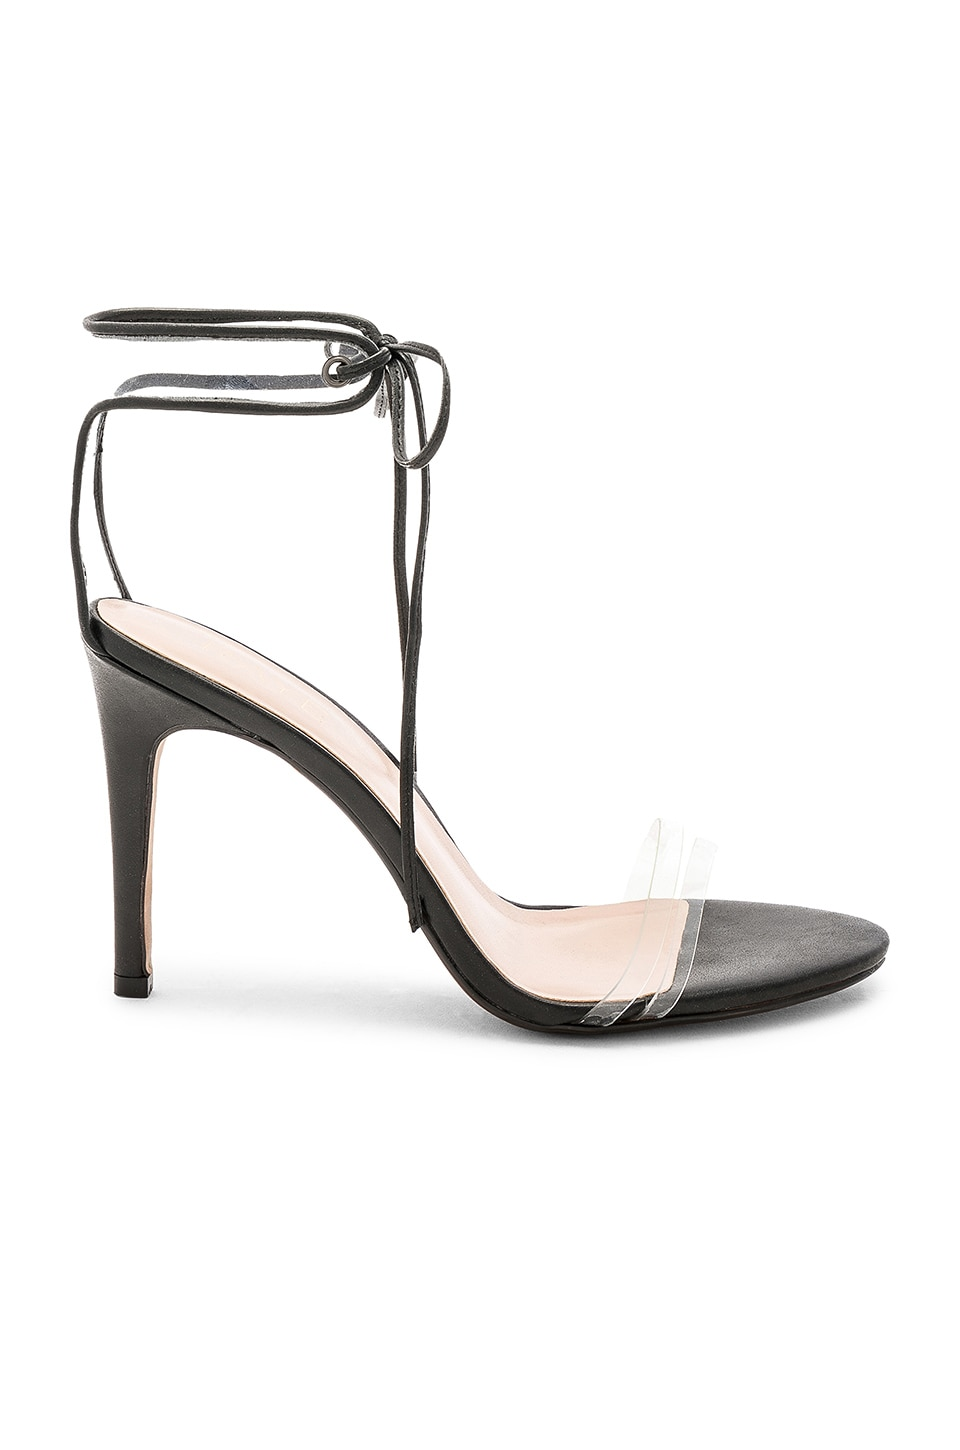 RAYE Daiquiri Heel in Black